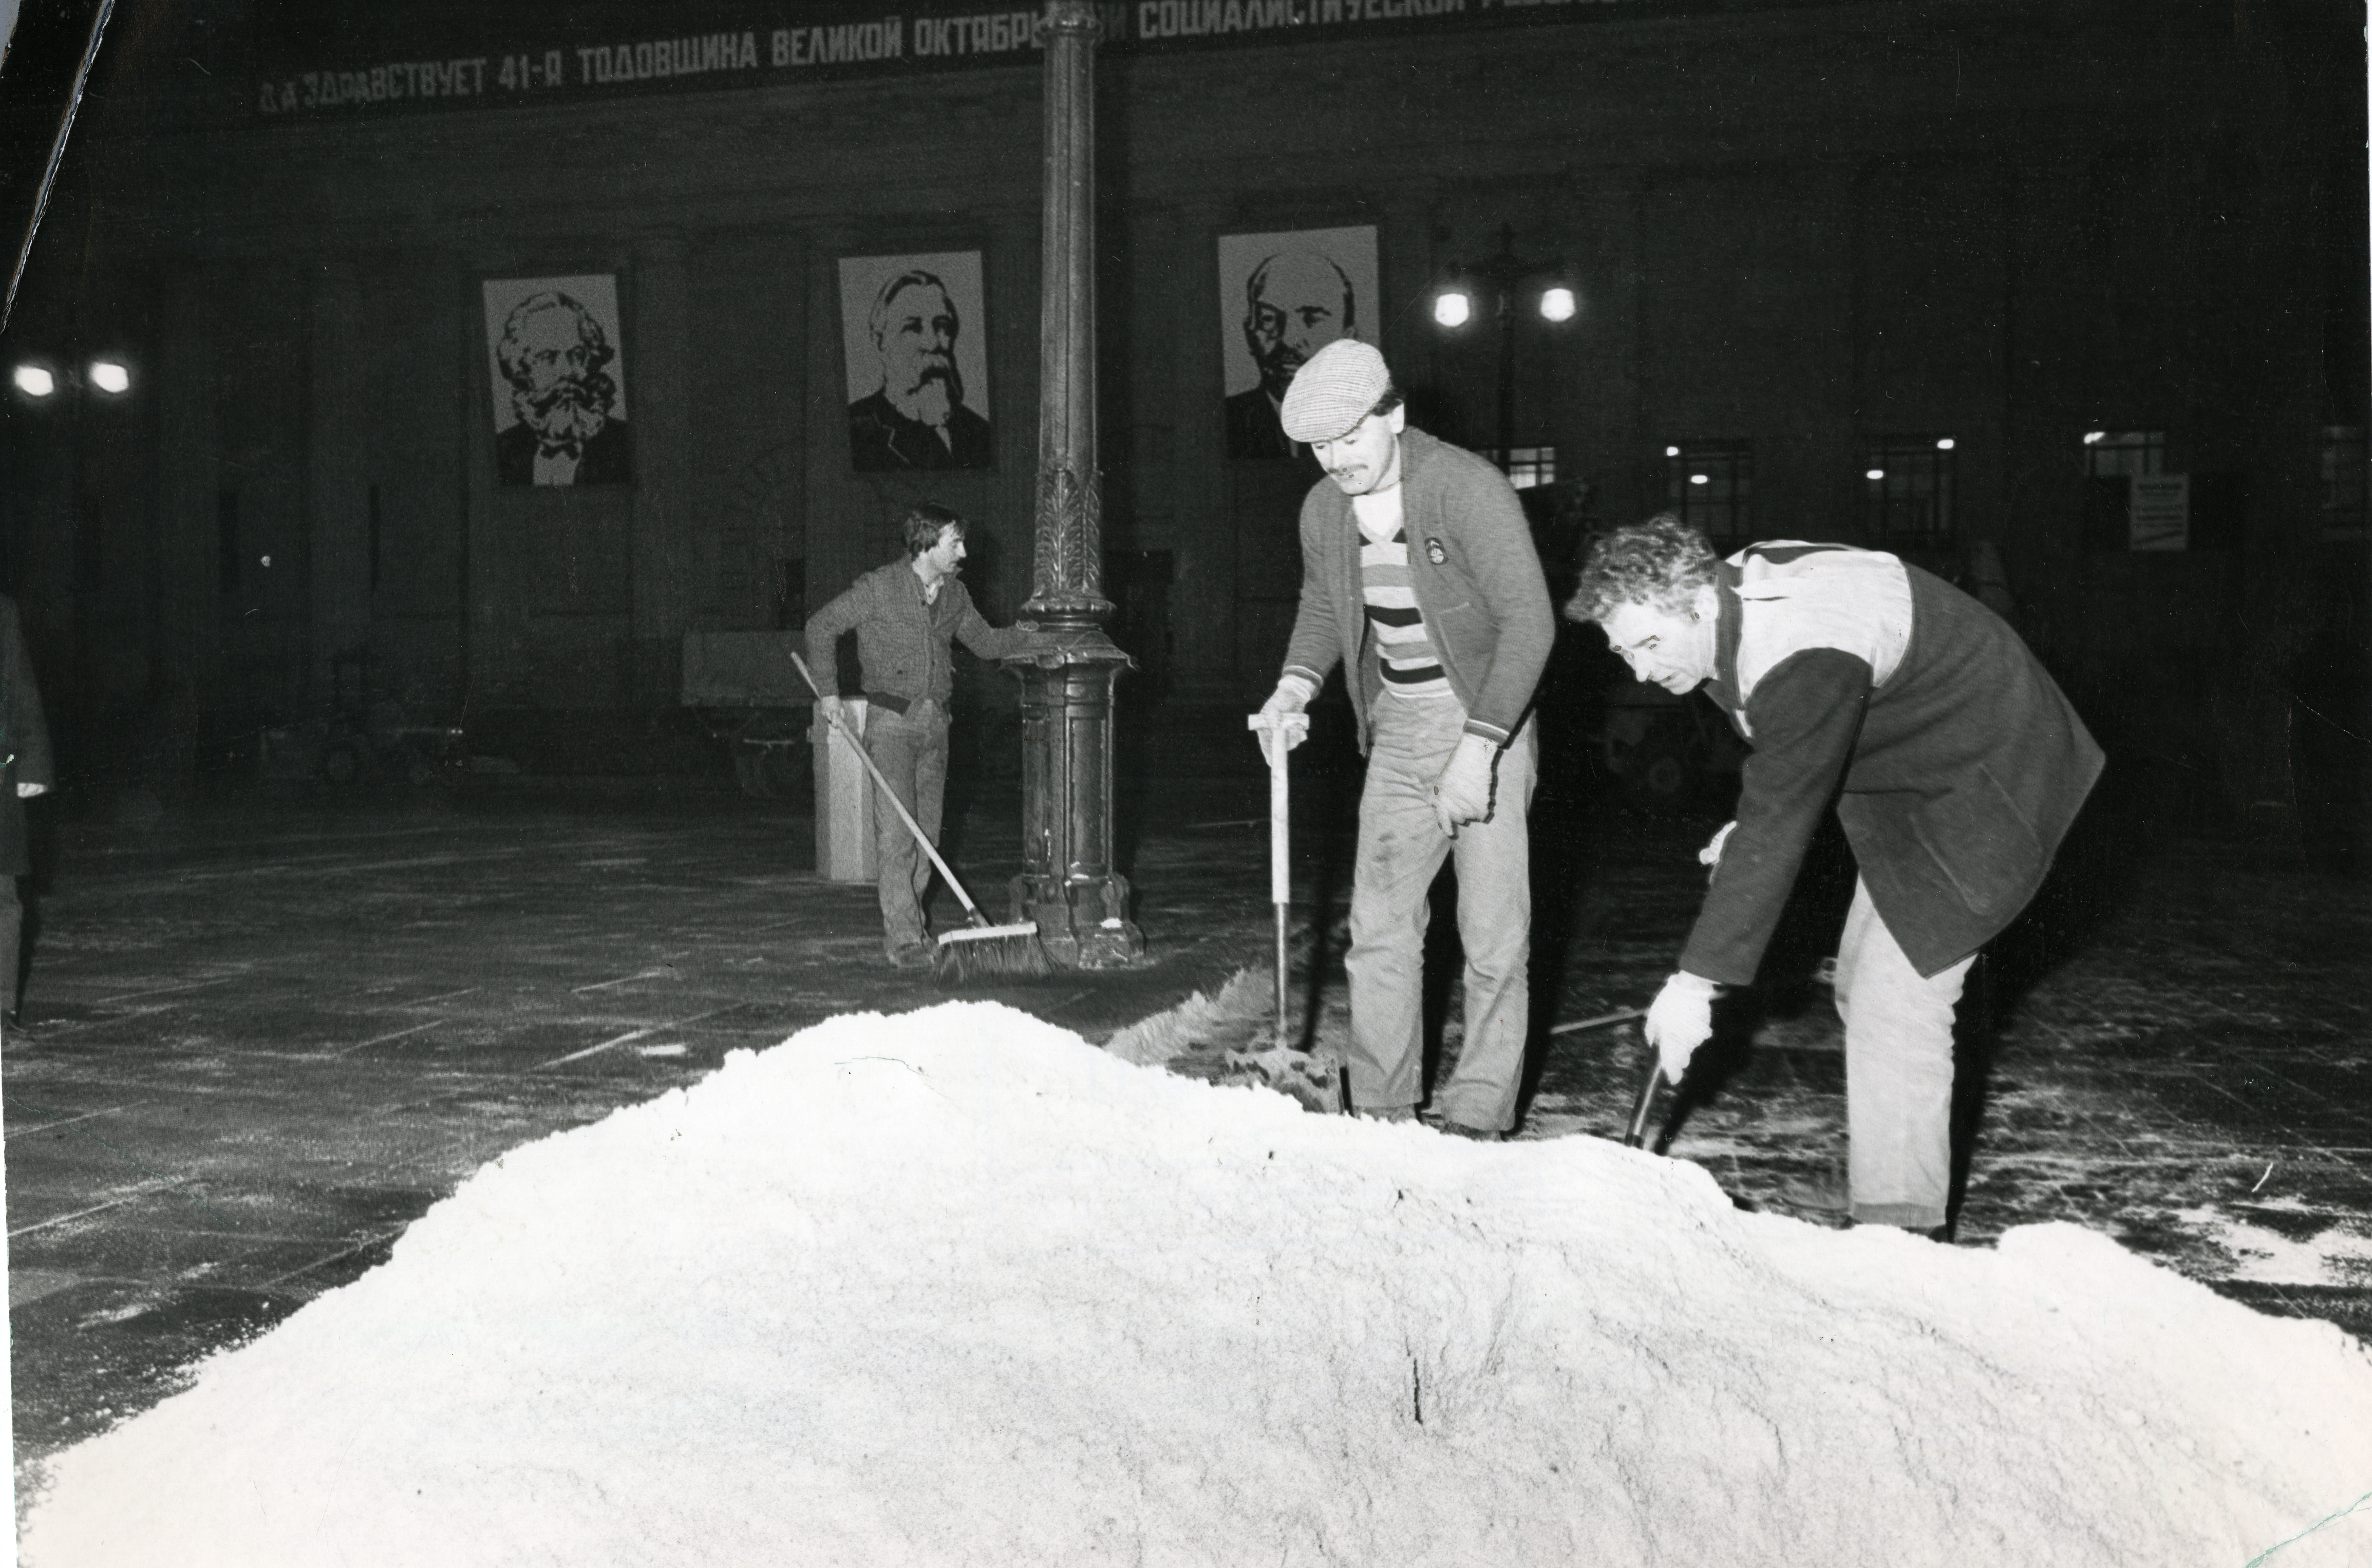 Work going on as snow is brought to the City Square in 1983.